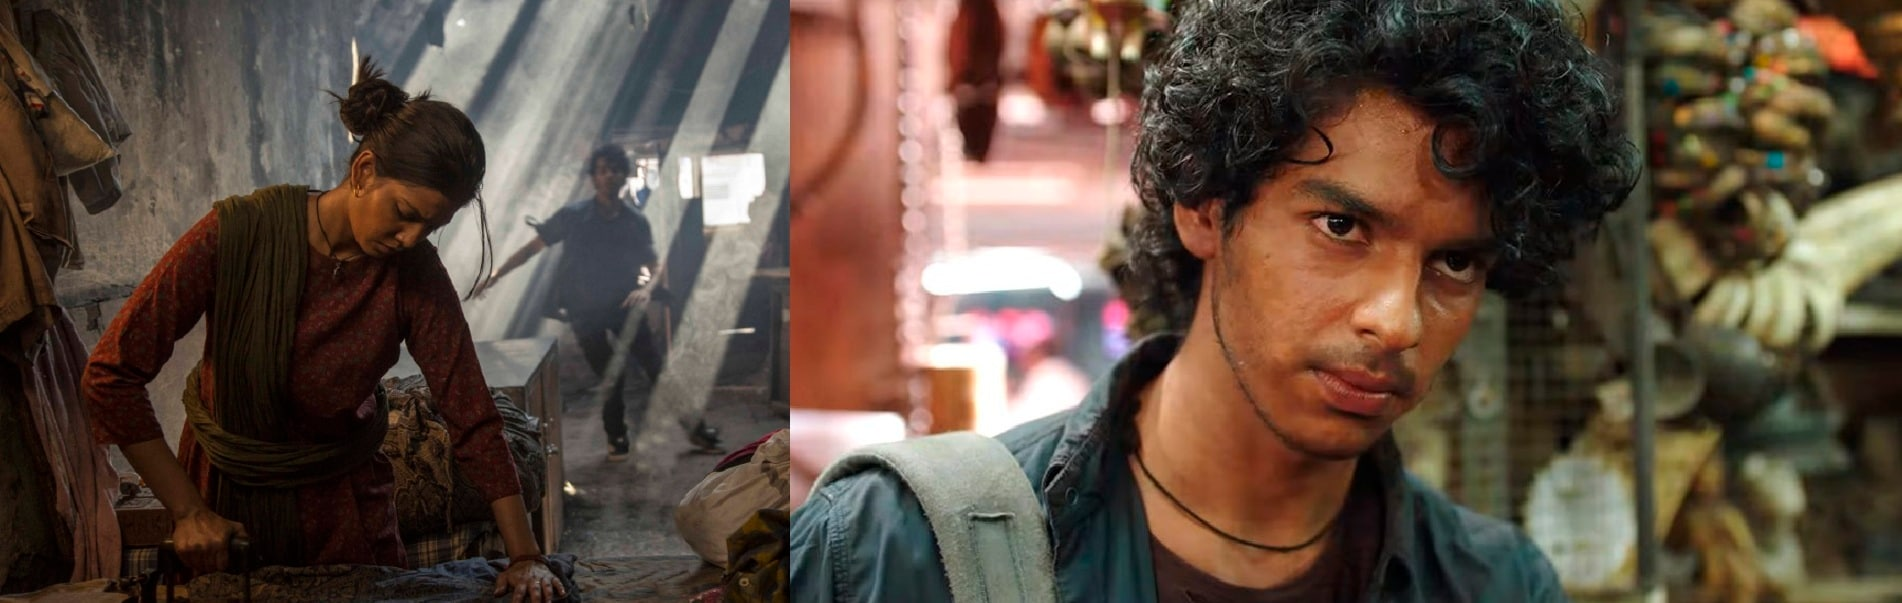 Beyond the Clouds movie review: Majid Majidi's debut Indian film suffers from an uneven narrative